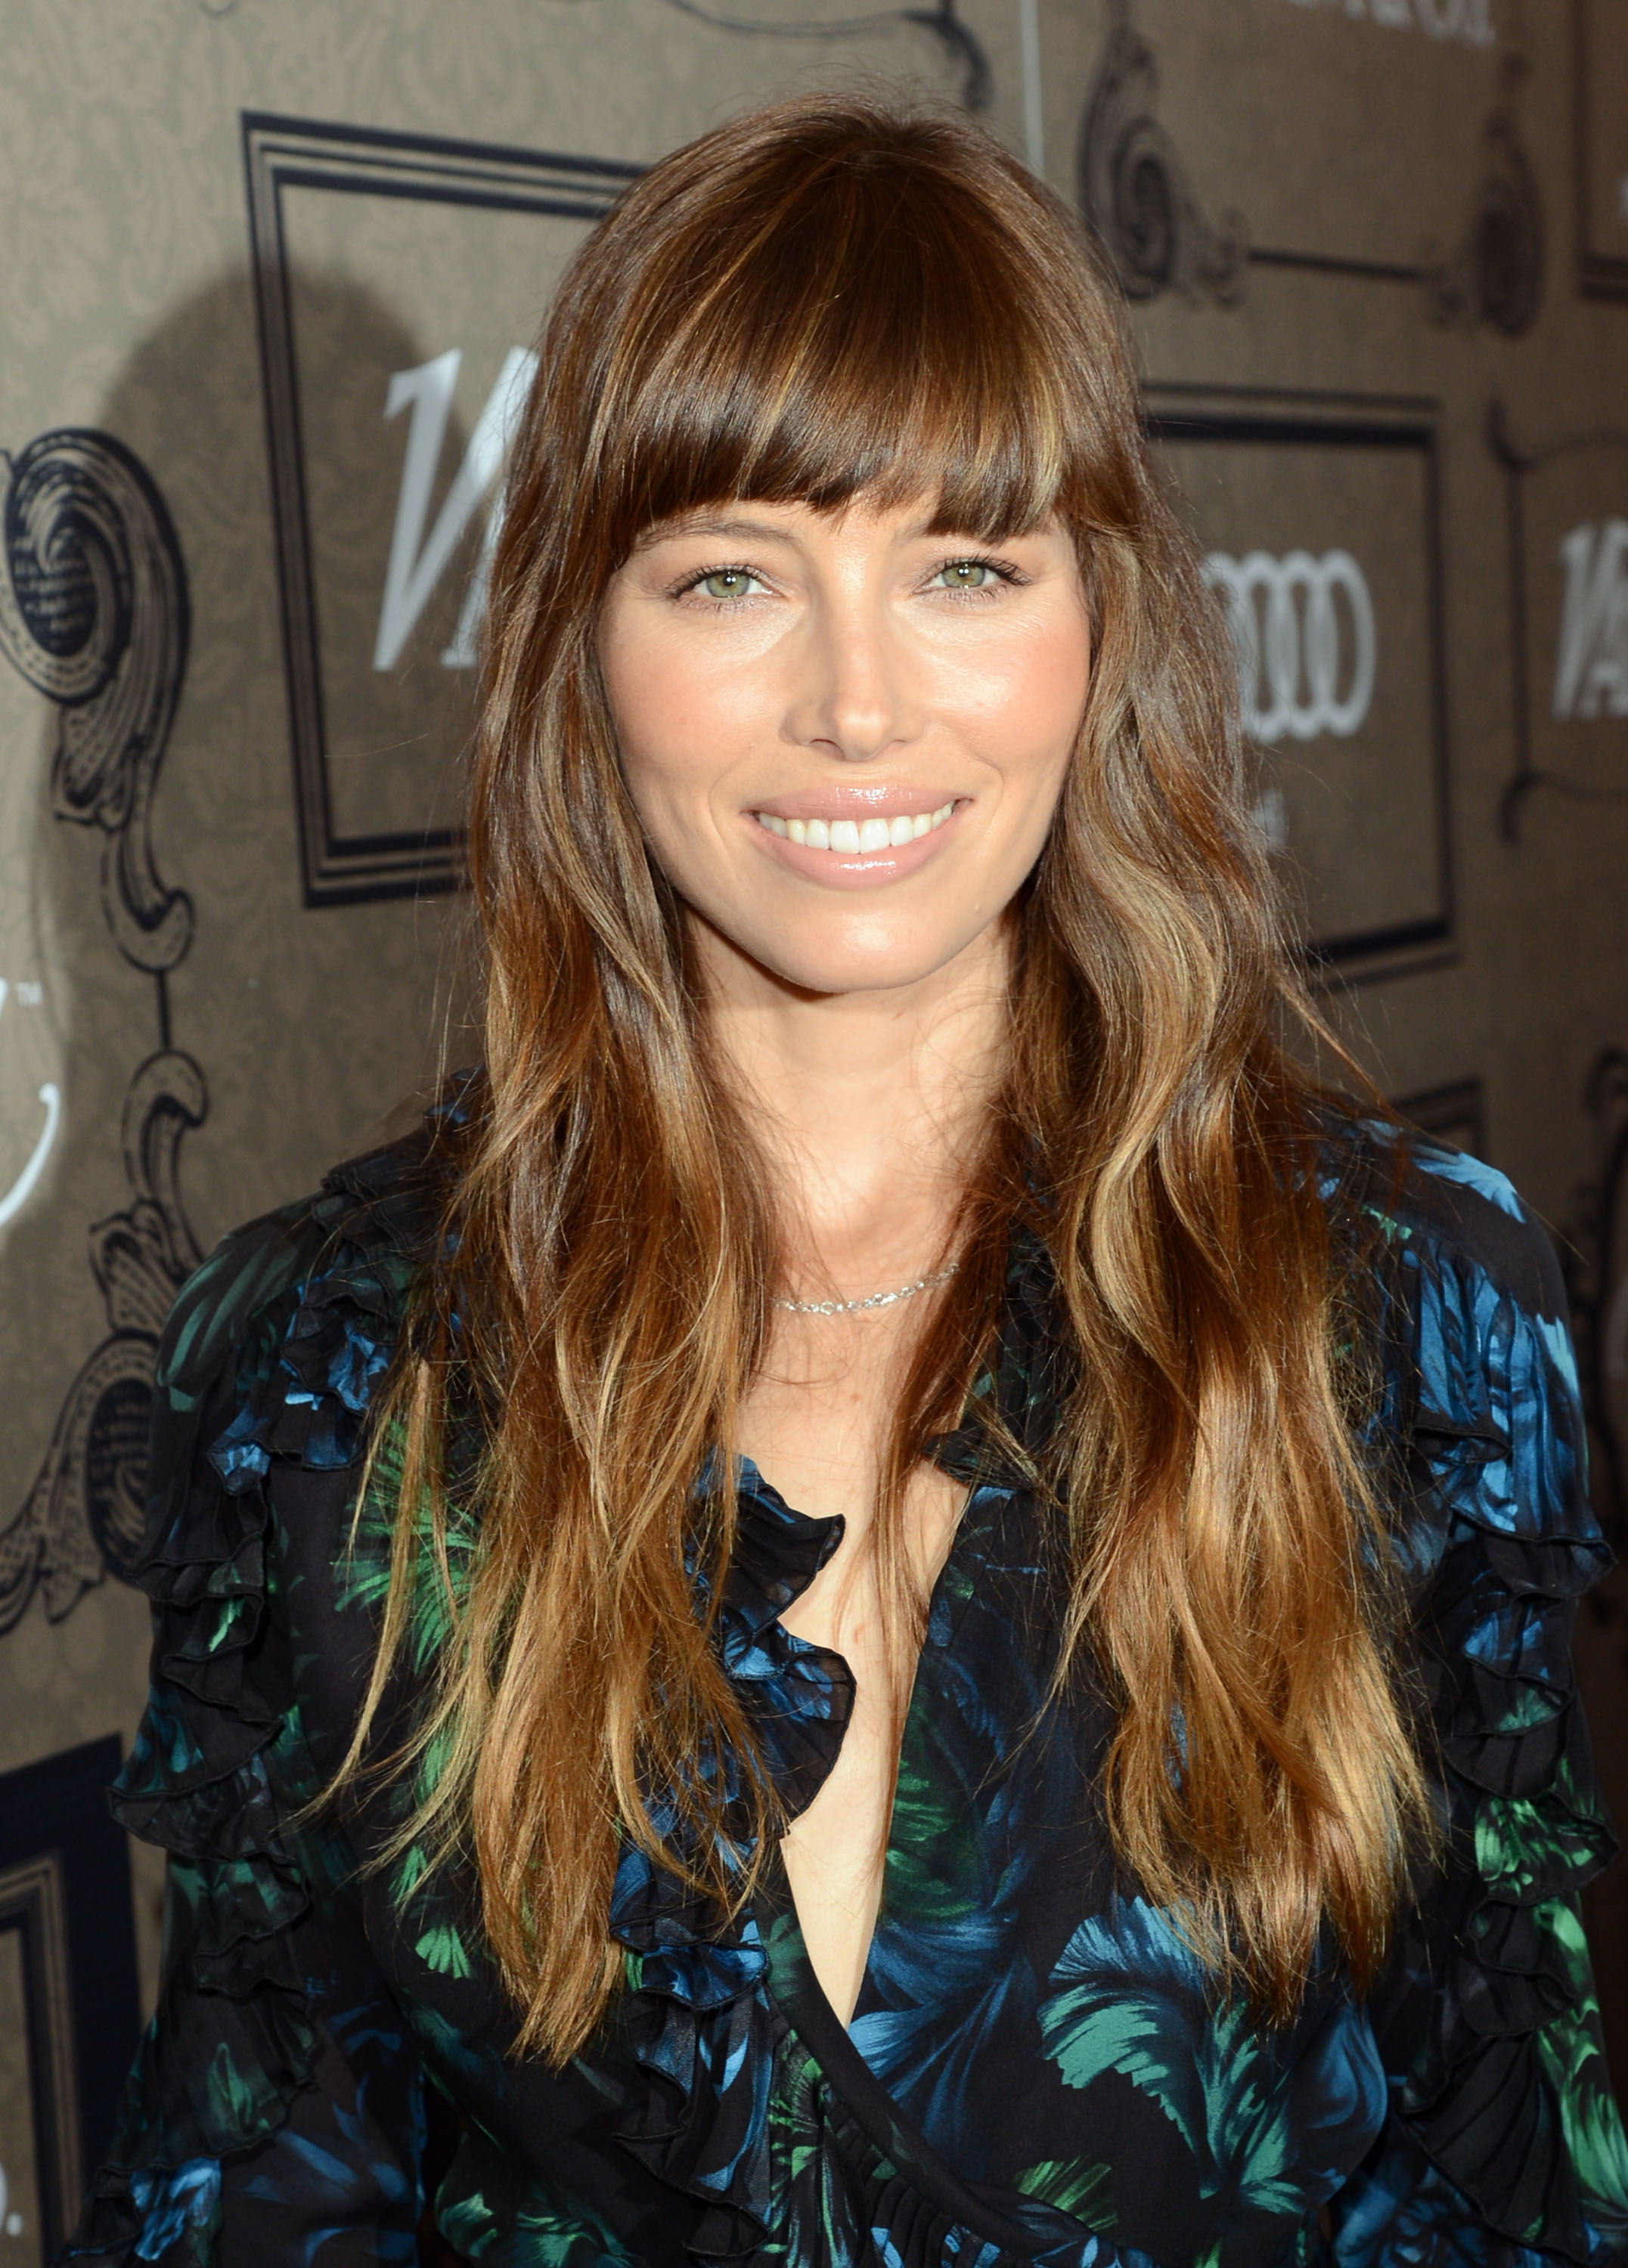 Jessica Biel wore her hair down for the occasion.